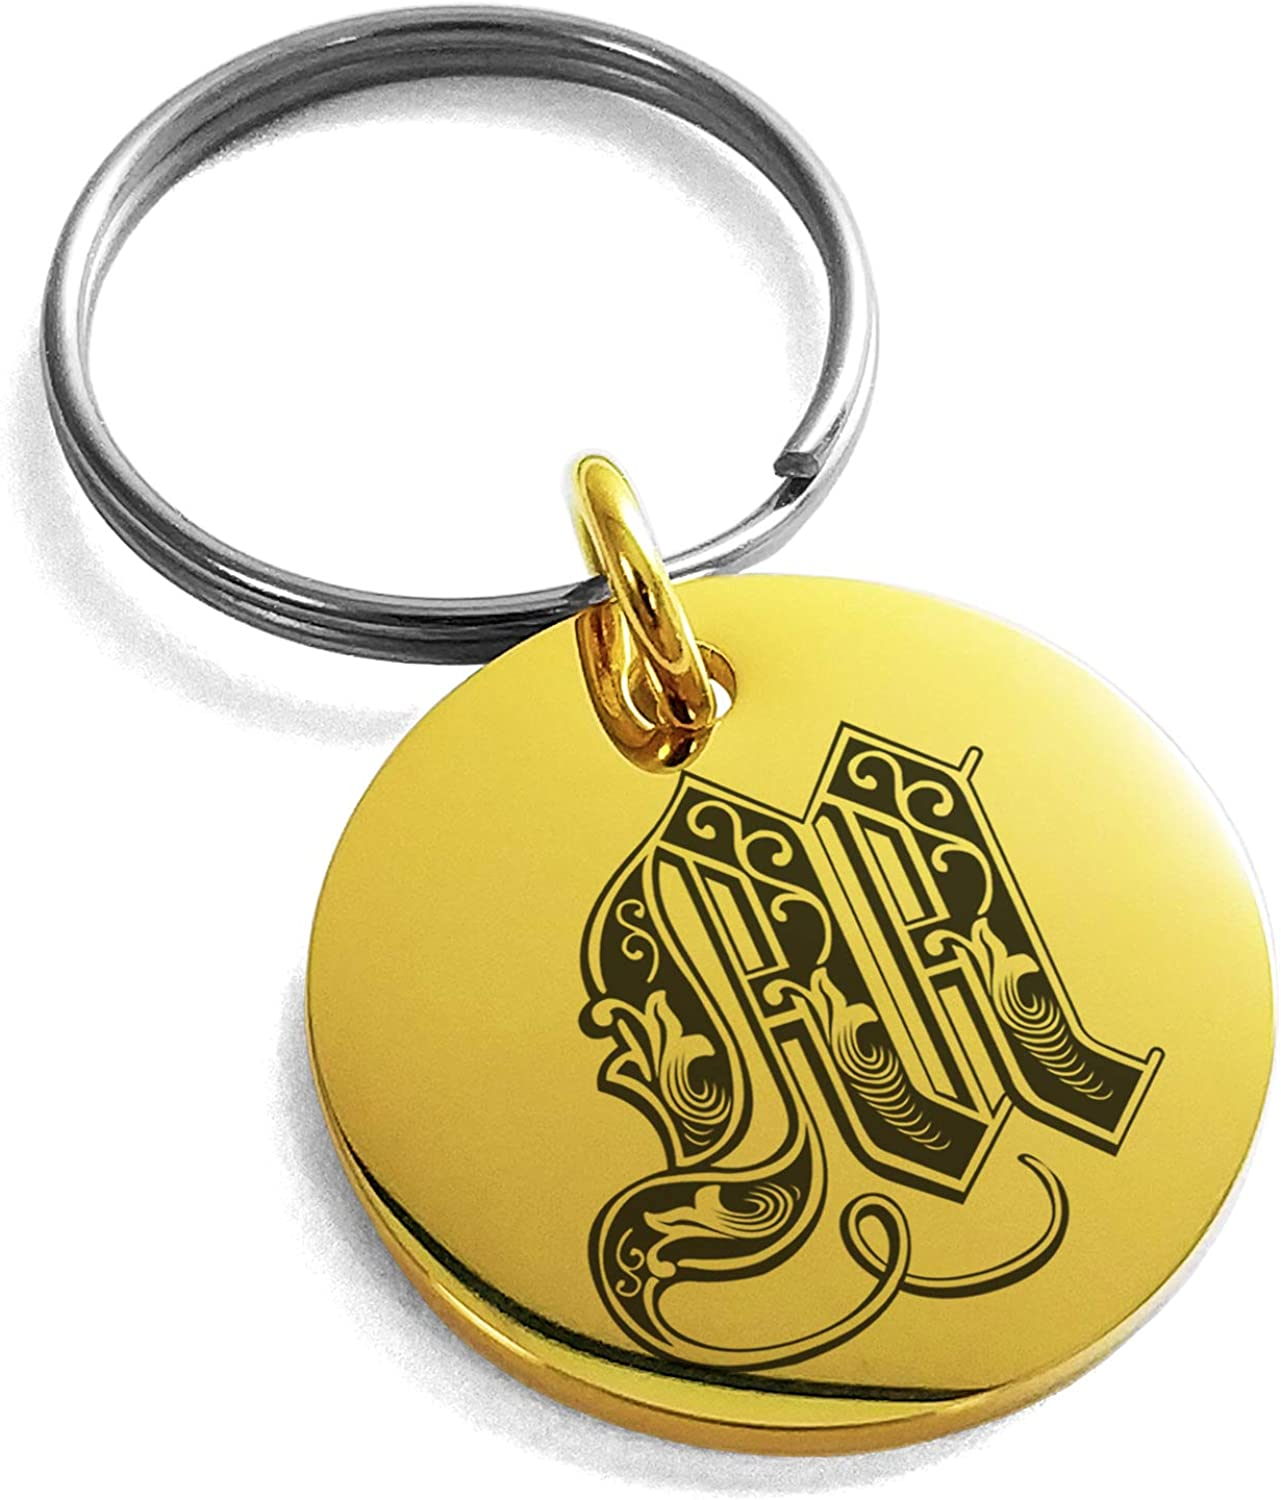 Tioneer Stainless Steel Letter M Initial Royal Monogram Small Medallion Circle Charm Keychain Keyring